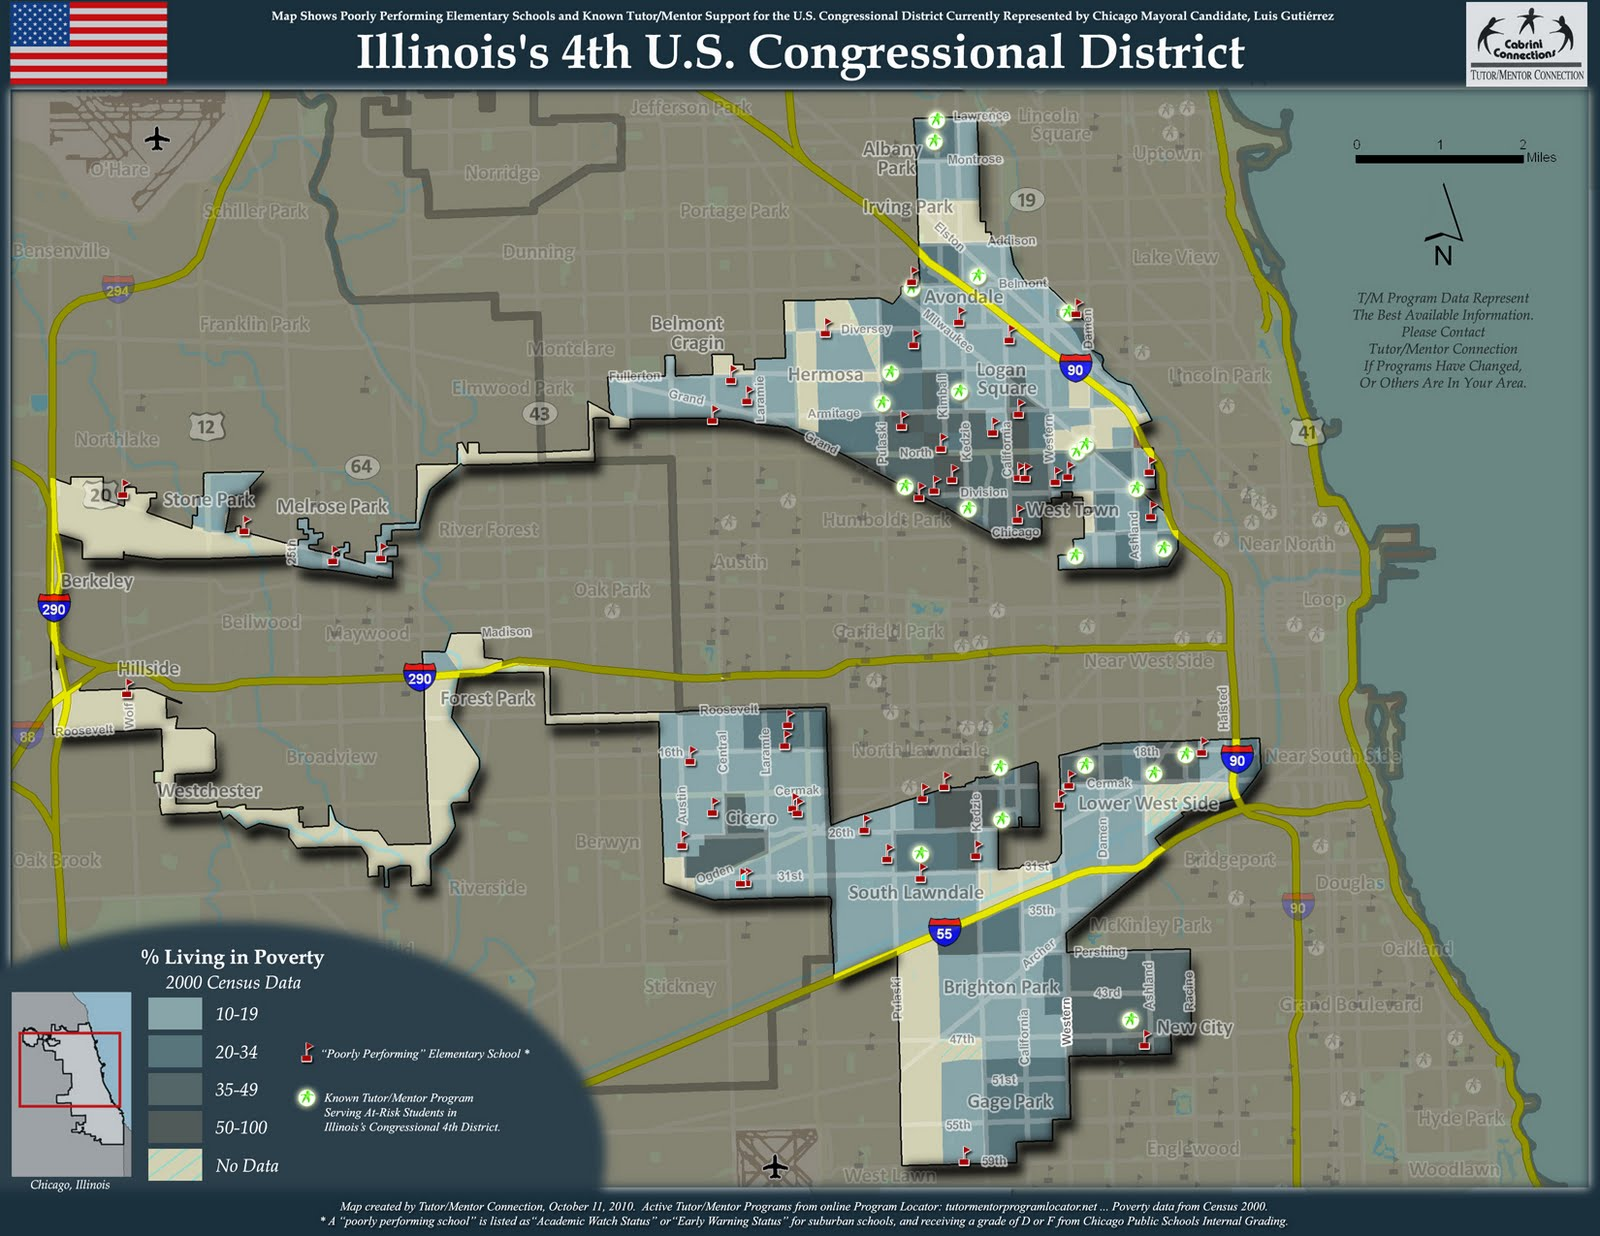 Chicago Map With Neighborhood Names%0A Luis Gutierrez Congressional District How to Draw Congressional District in  order to get Reelected   ROFLing   Pinterest   Luis gutierrez